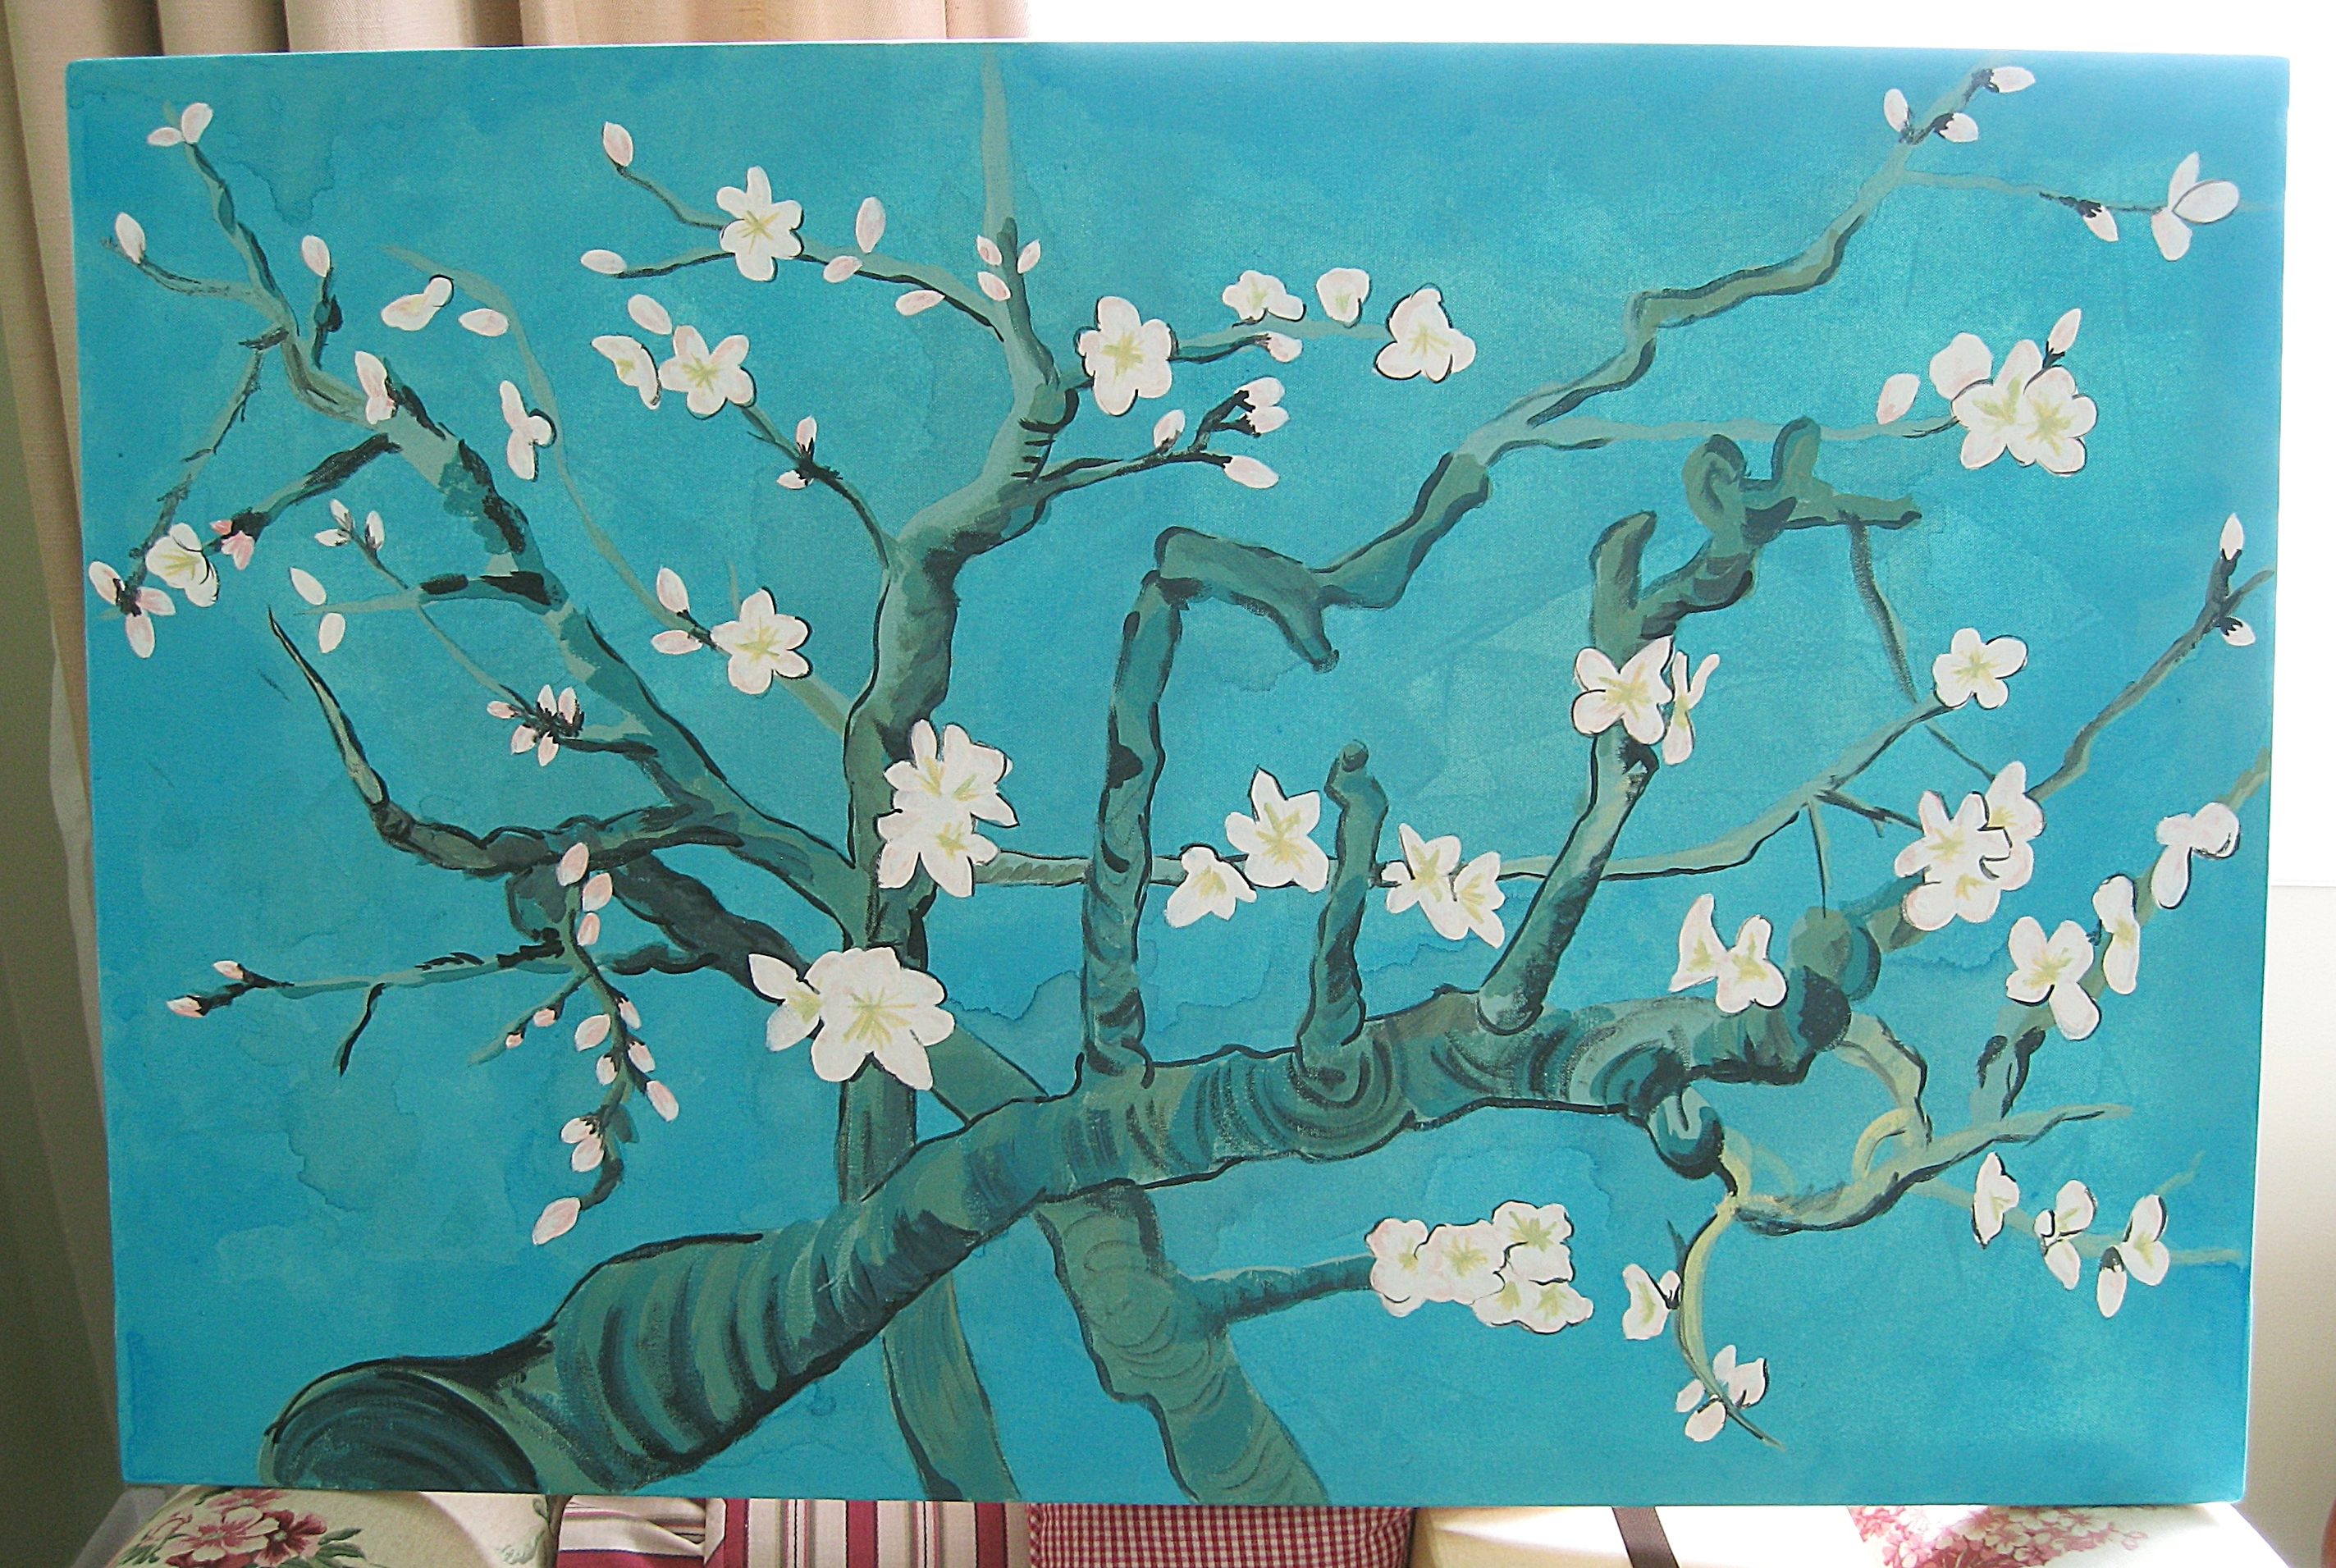 Almond Blossoms Vincent Van Gogh Wall Art In Most Up To Date Van Gogh Inspired Wall Art (View 3 of 15)